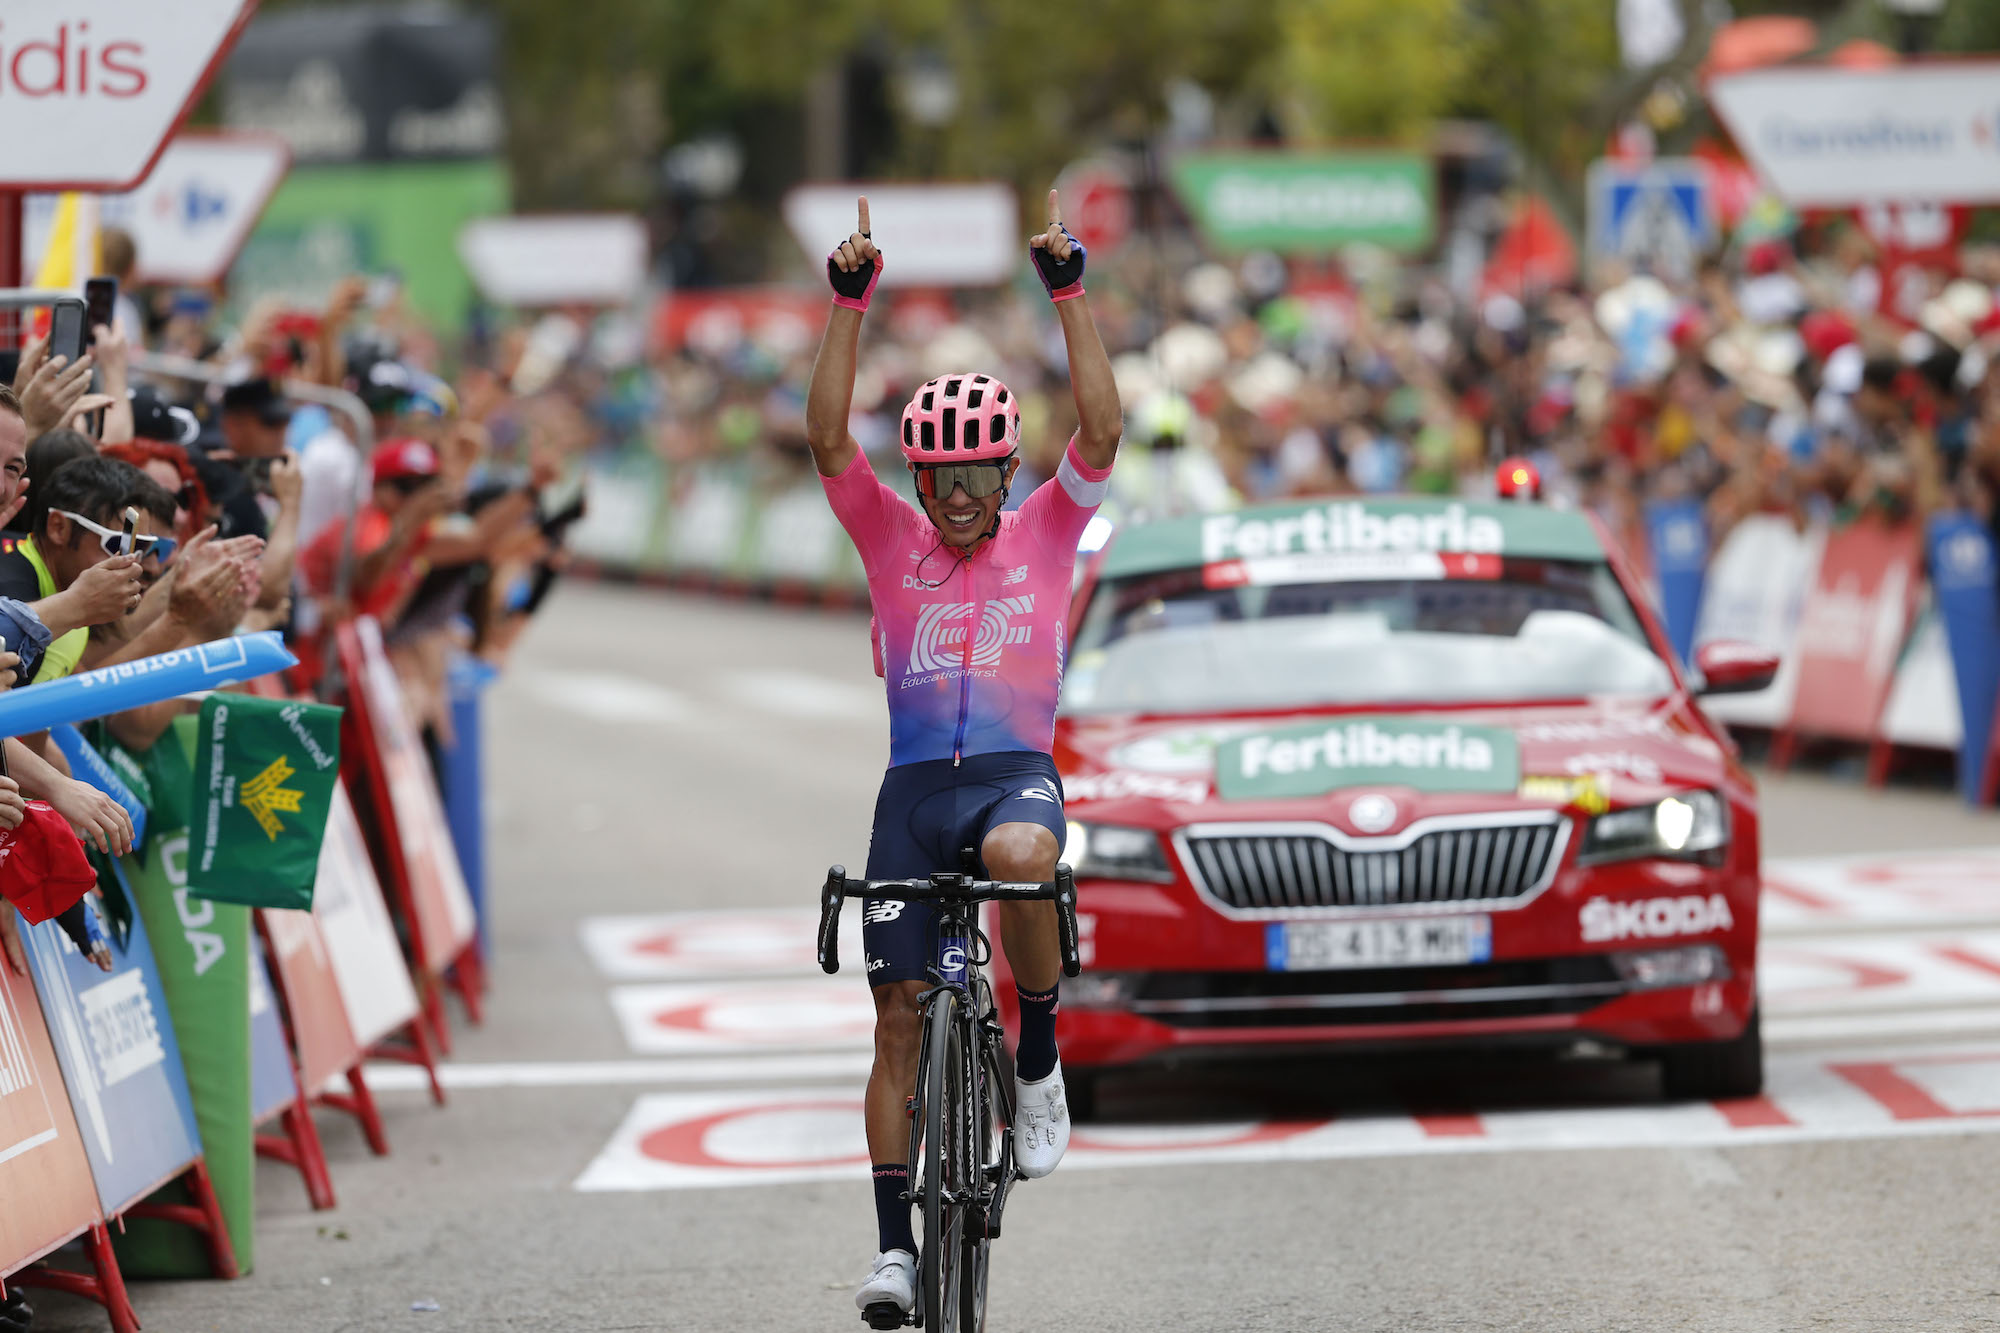 Sergio Higuita solos to Vuelta a España 2019 stage 18 victory as Roglič holds firm